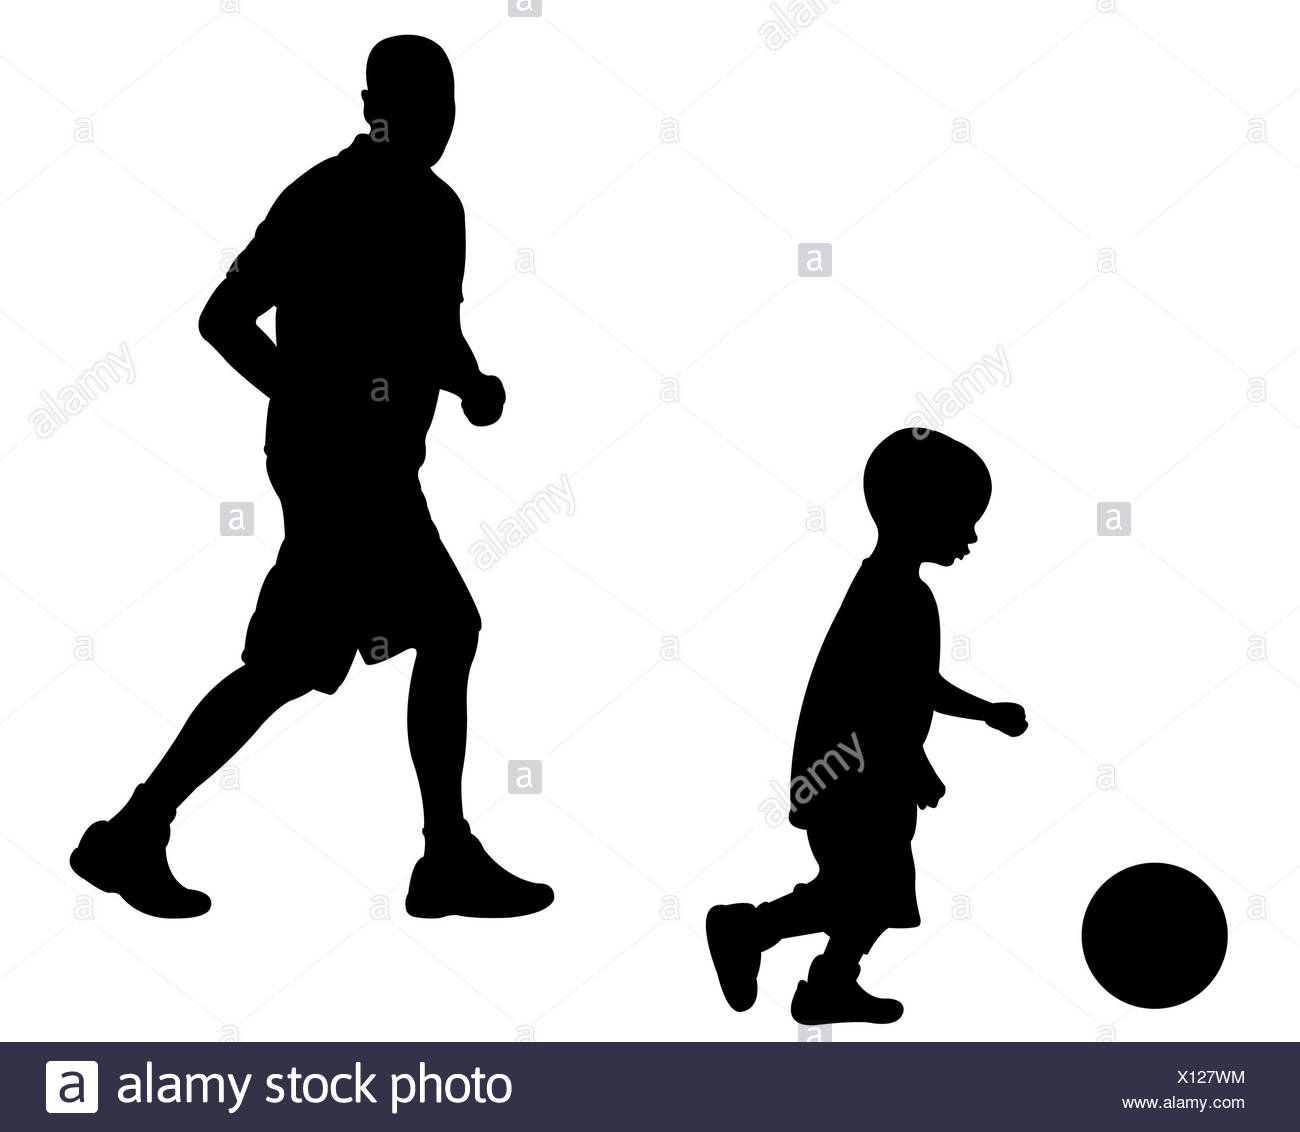 dad and son playing football - Stock Image